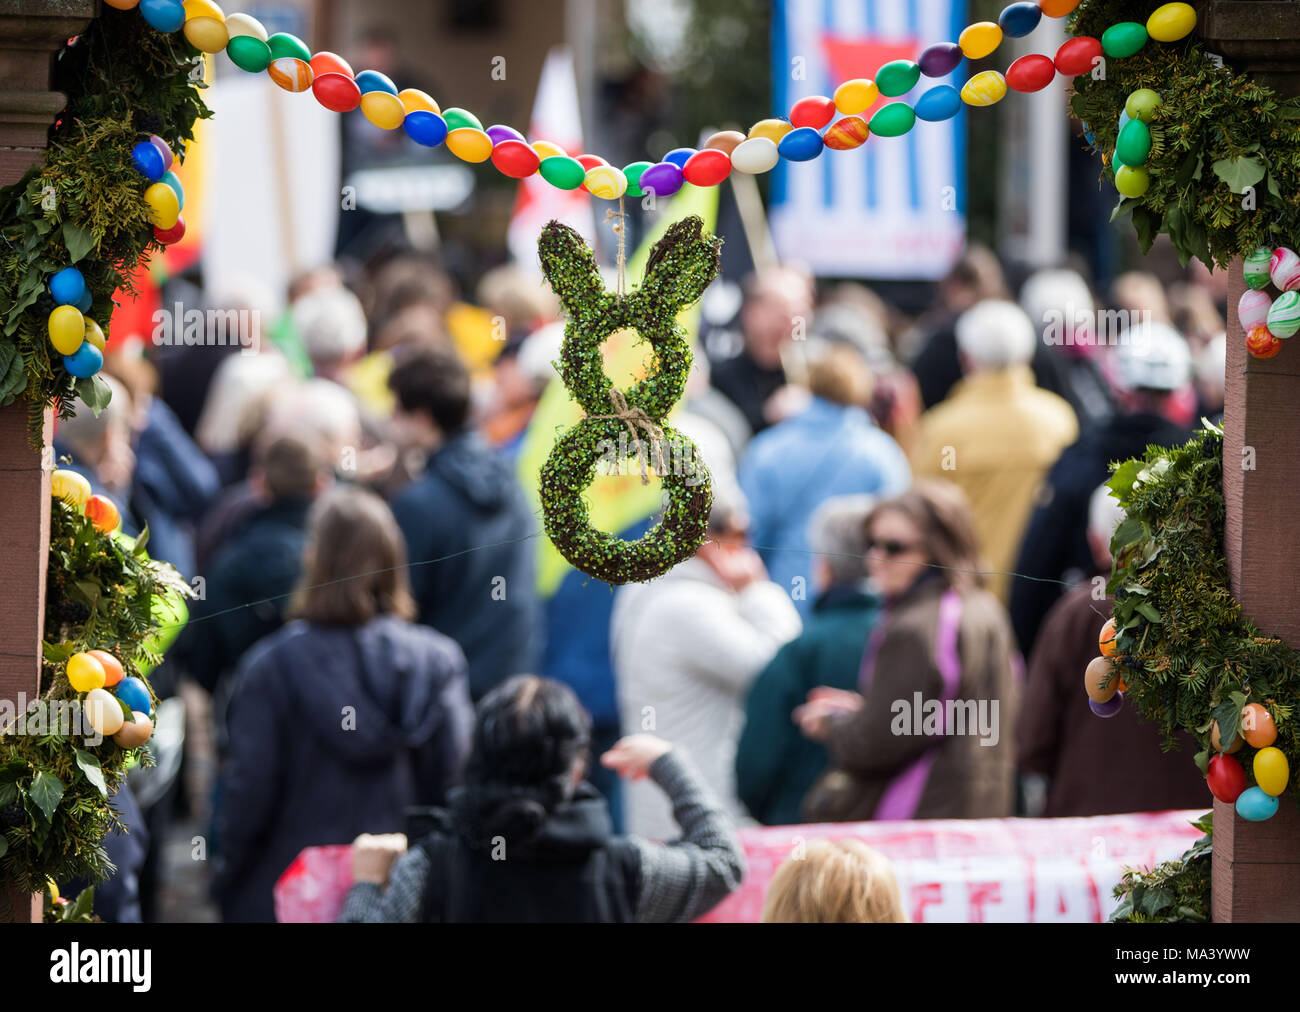 30 March 2018, Germany, Bruchkoebel: Protestors gather for an Easter rally among cheerful decorations. Over Easter, several peace marches are planned in the Hesse region. Topics include demilitarization, German miliary operations in the Middle East, stopping weapons exports and phasing out of nuclear energy. Photo: Frank Rumpenhorst/dpa Stock Photo